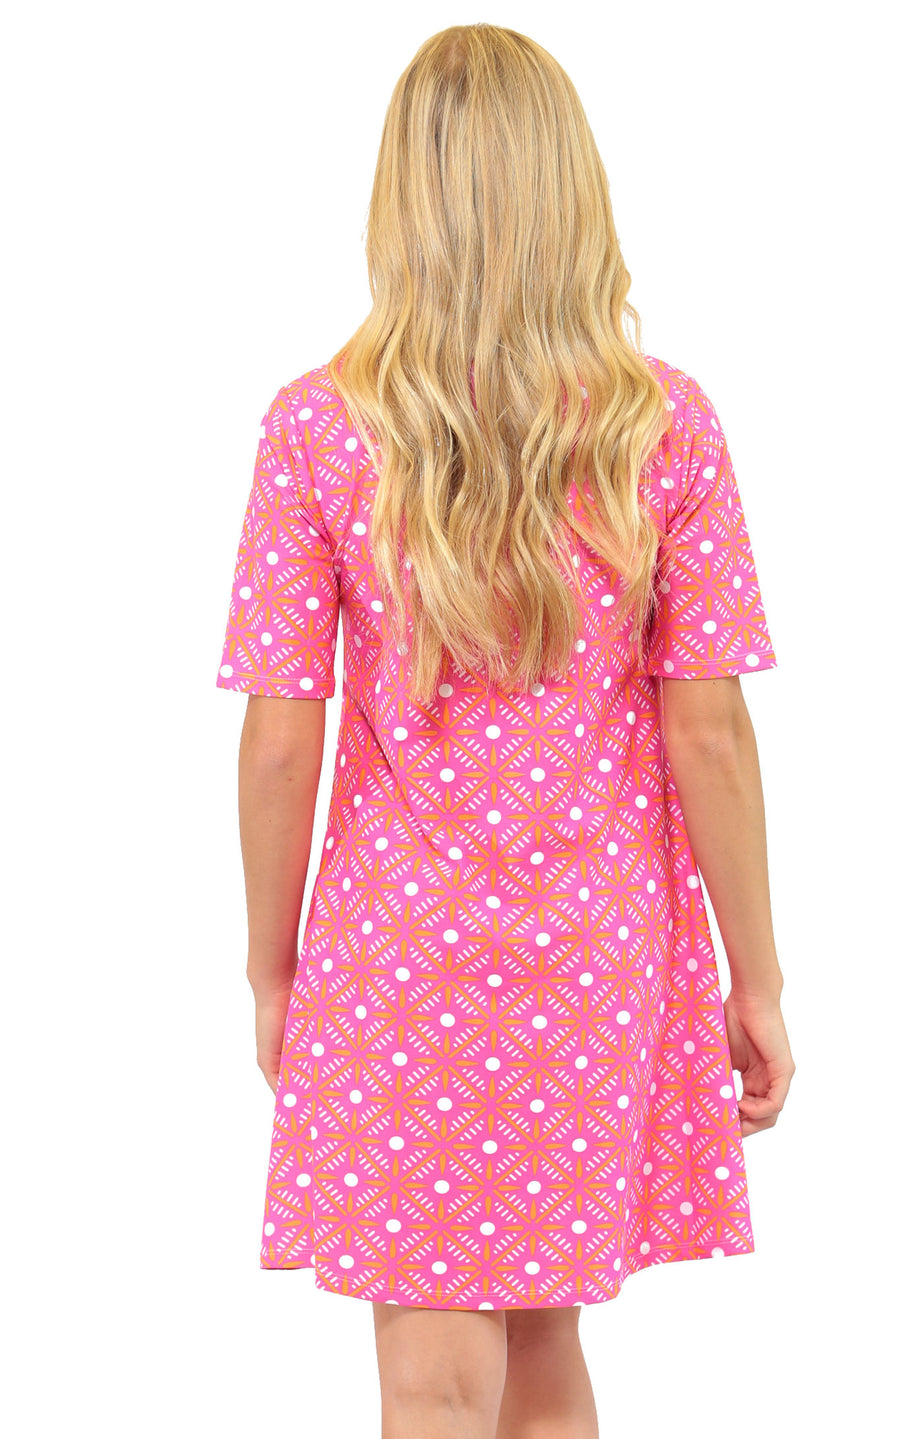 All For Color-Pink Prep Bayshore Lane Swing Dress - FINAL SALE-Dresses